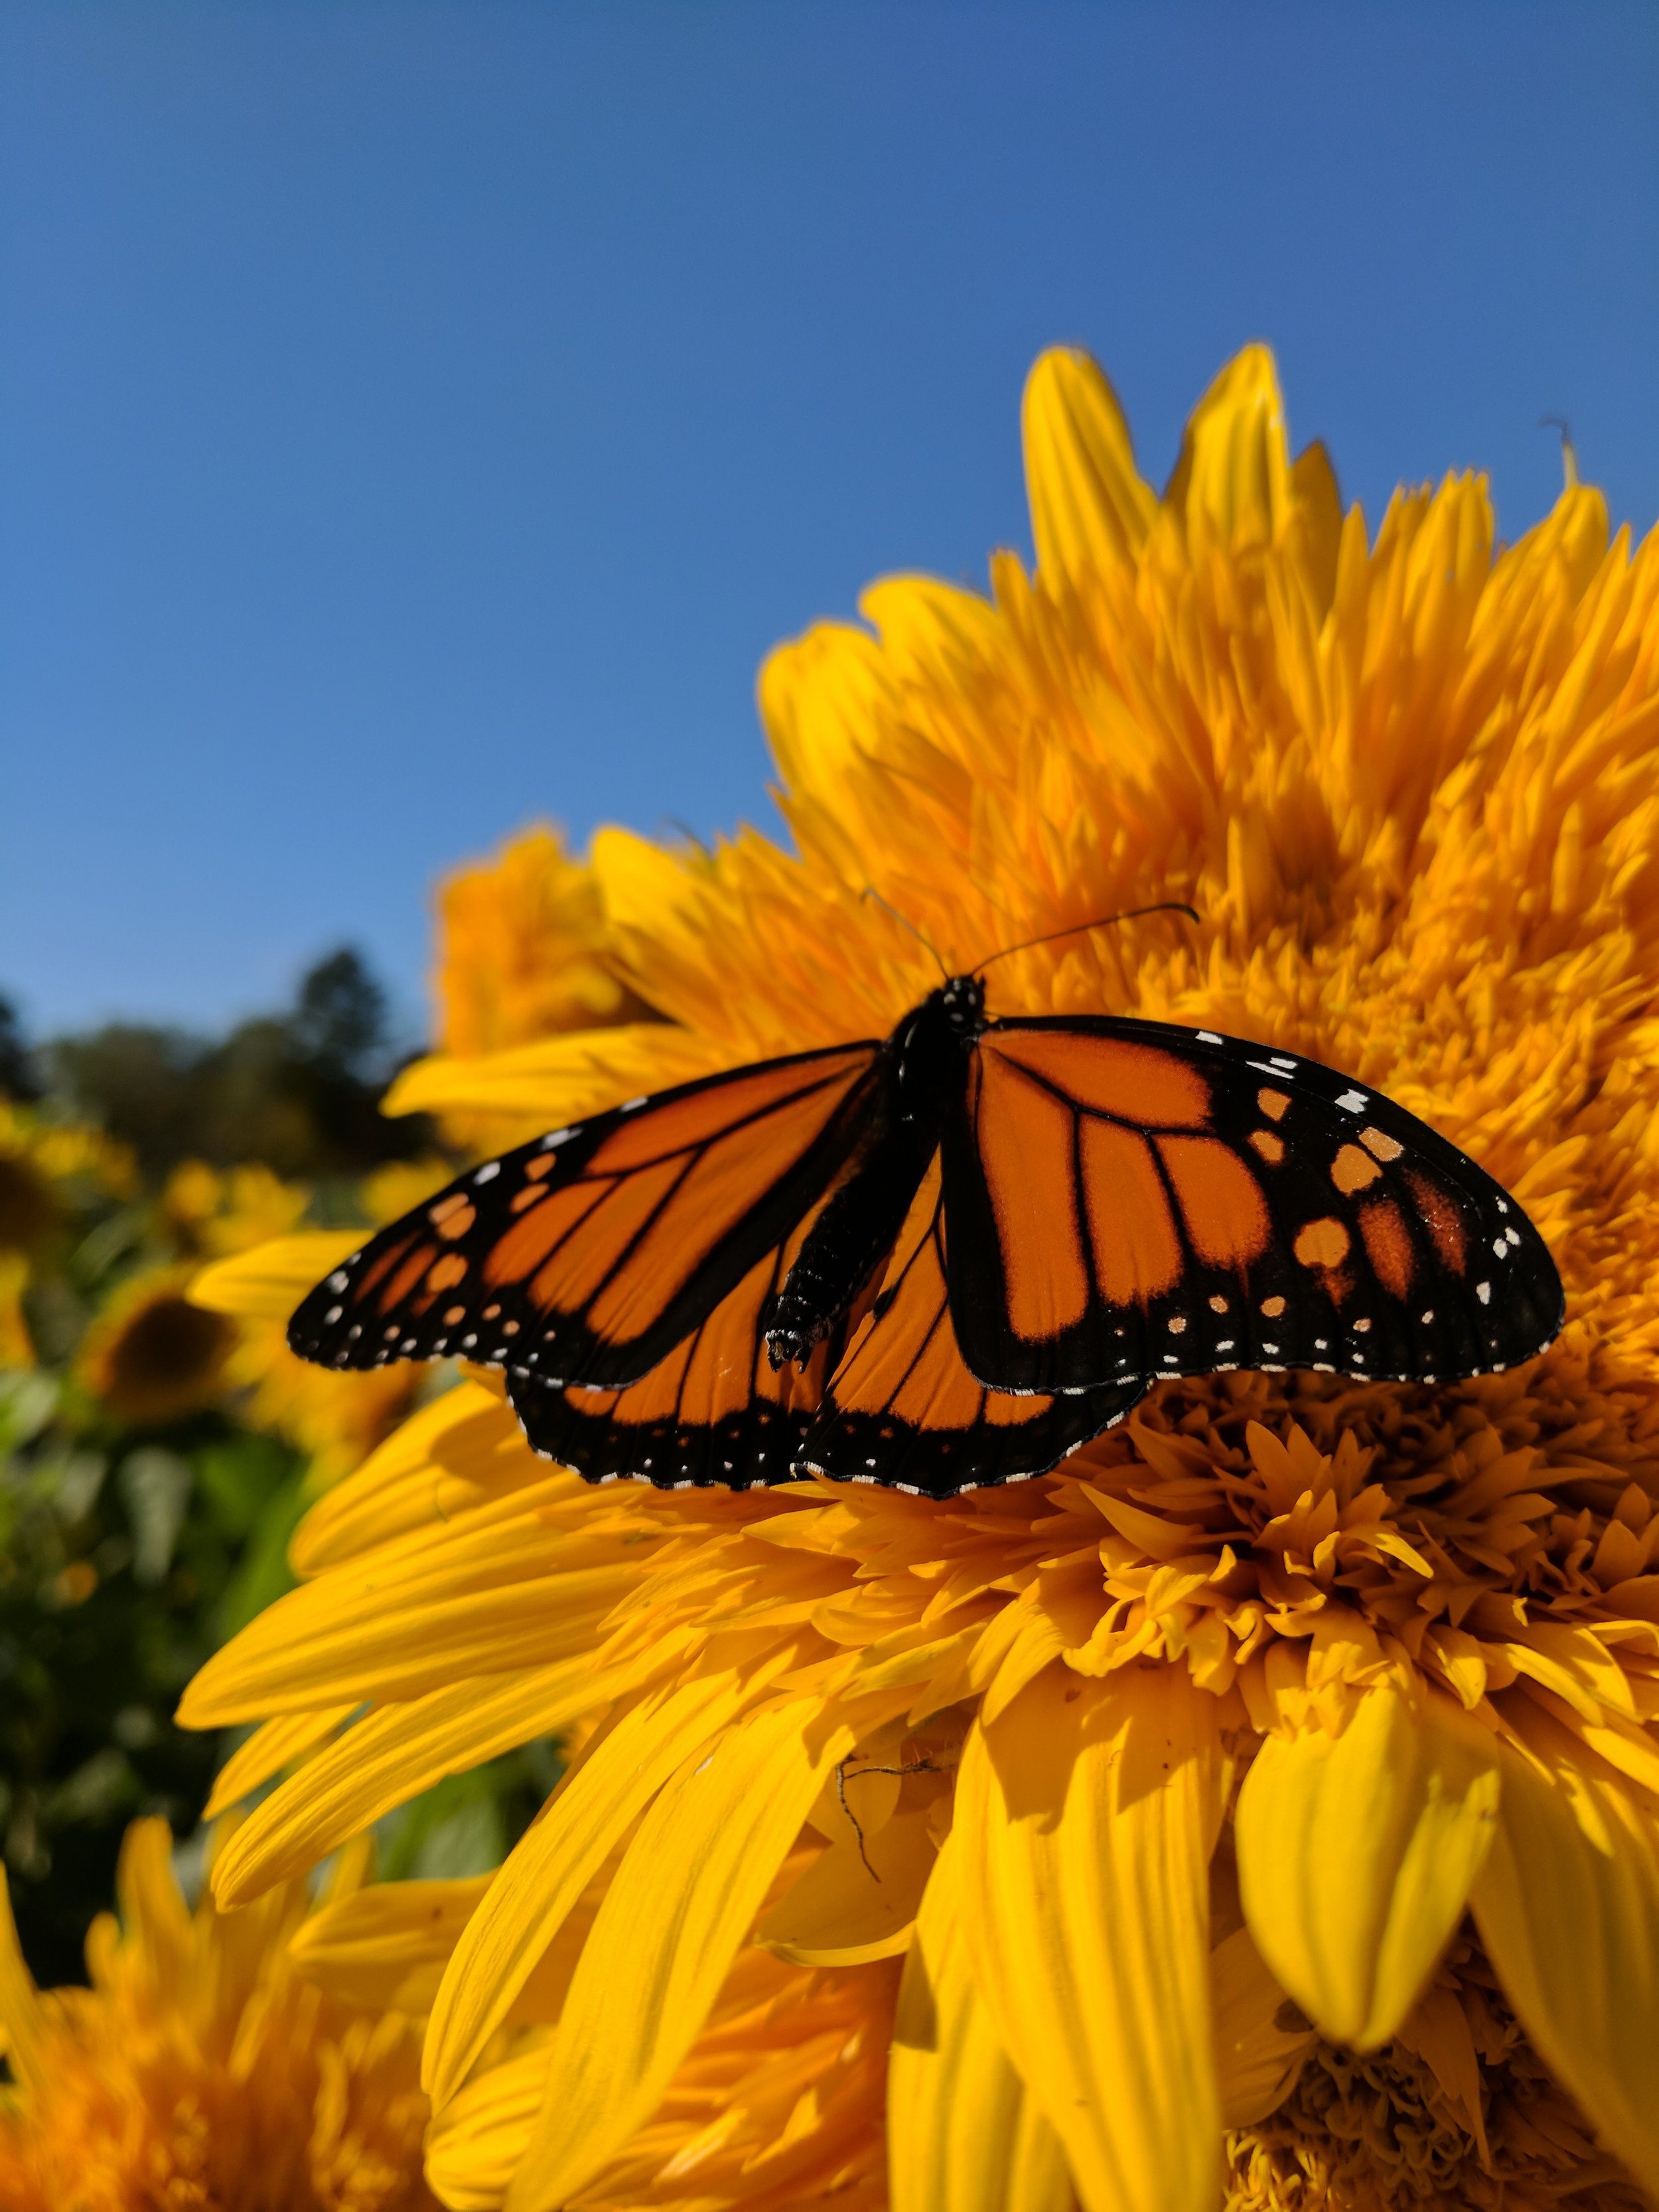 Late summer Monarch preparing for the long journey south for winter